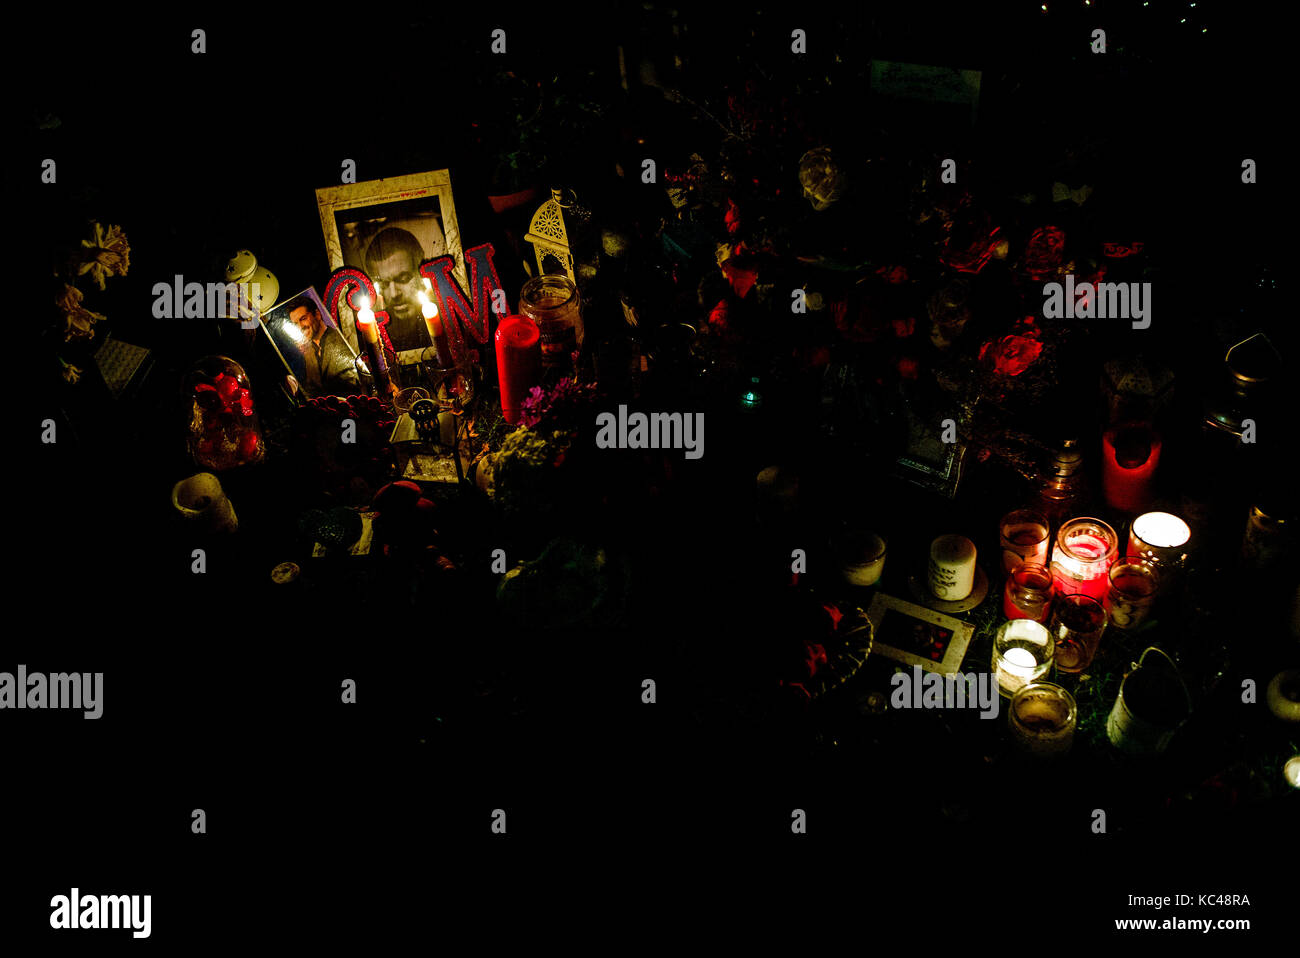 George michael memorial candle lit tributes in park opposite his house in Highgate London at night - Stock Image